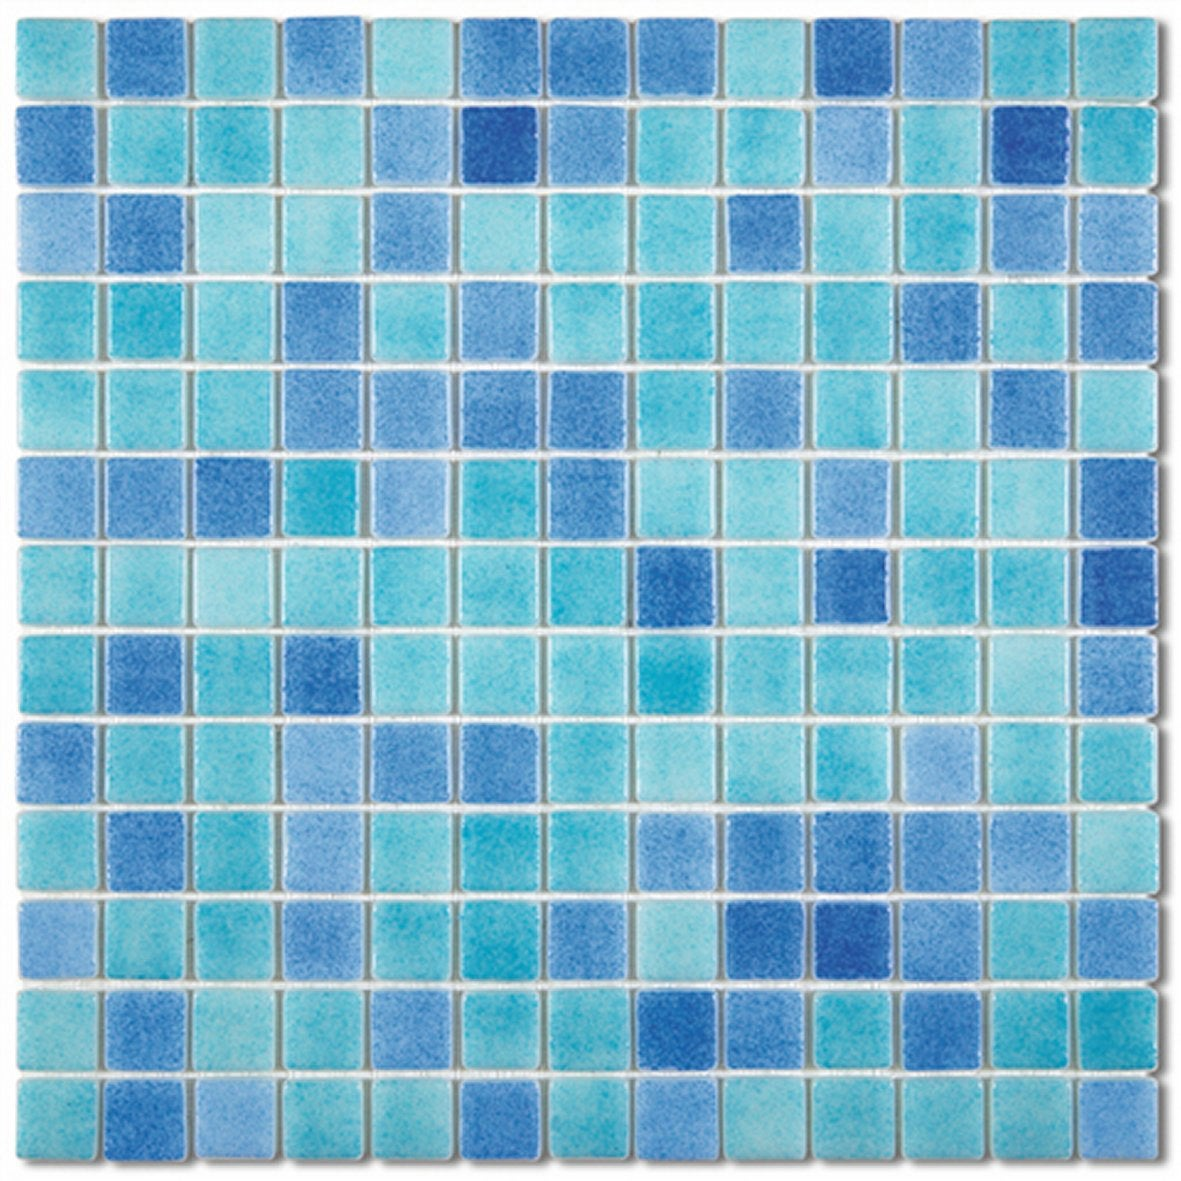 Mosa que matisse fresco bleu leroy merlin for Mosaique carrelage leroy merlin